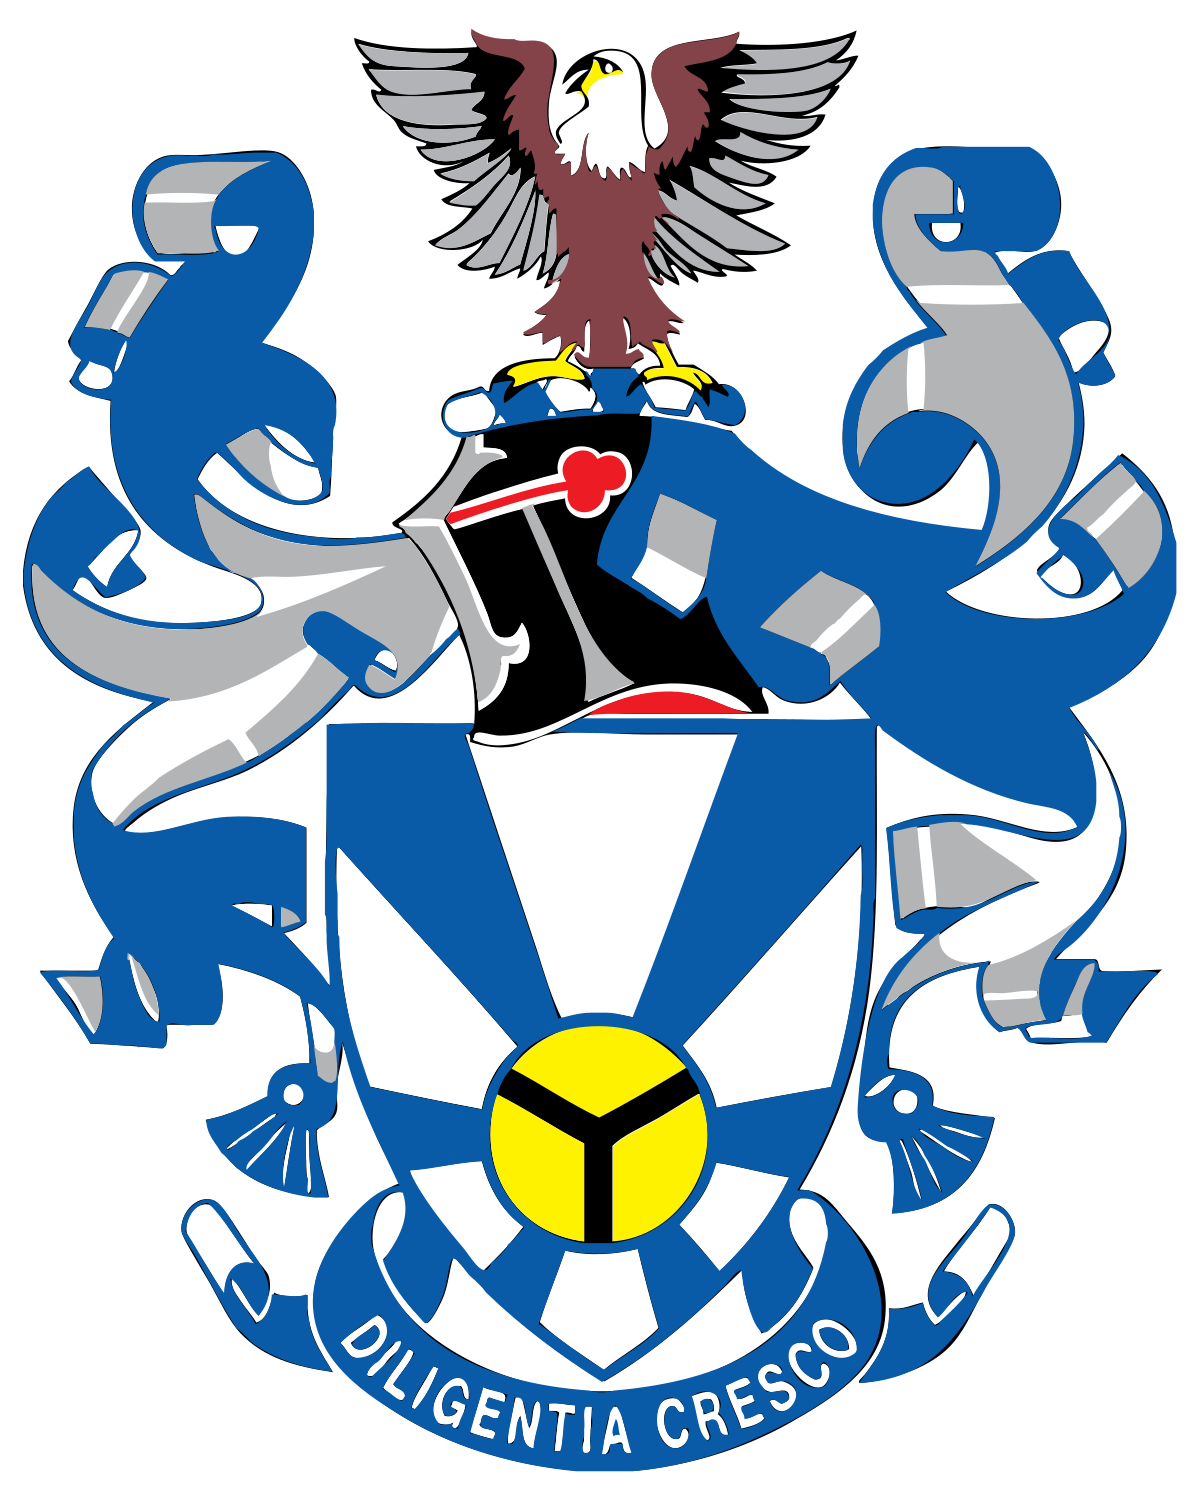 University of zululand wikipedia. Organization clipart chairman